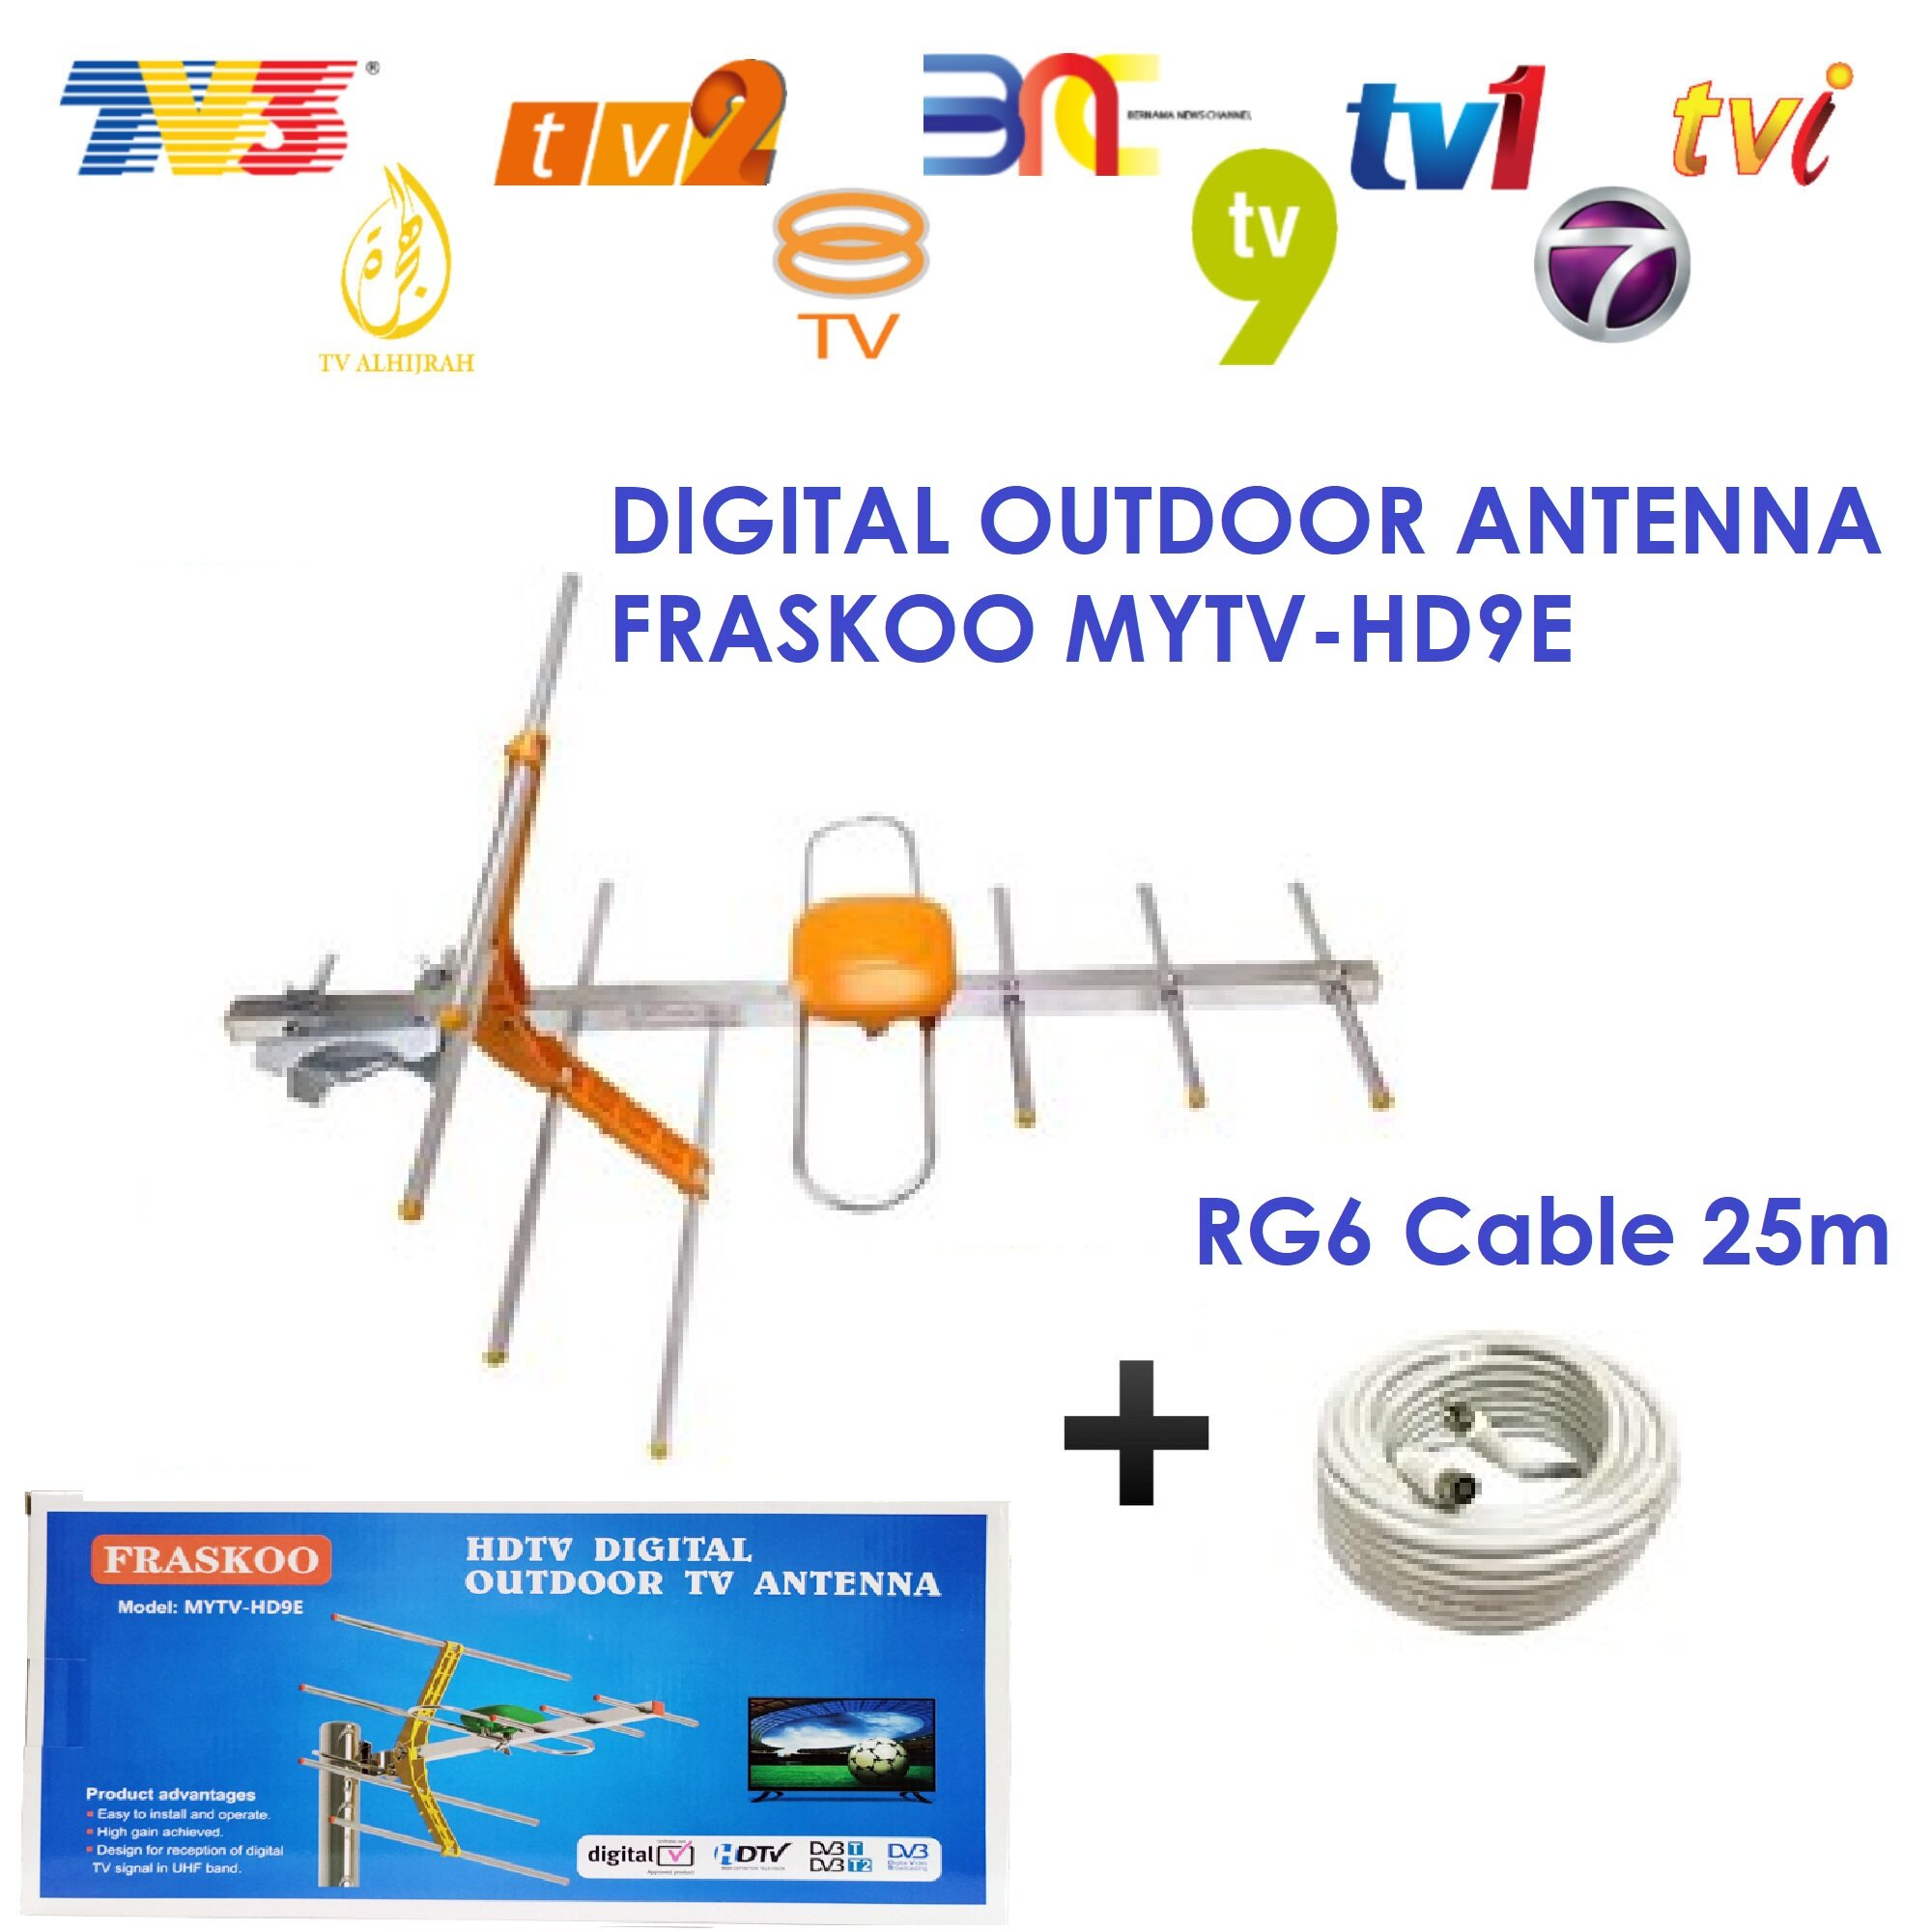 Fraskoo UHF Antenna Digital 8E MYTV MyFreeview DVBT2 High Gain Strong Signal